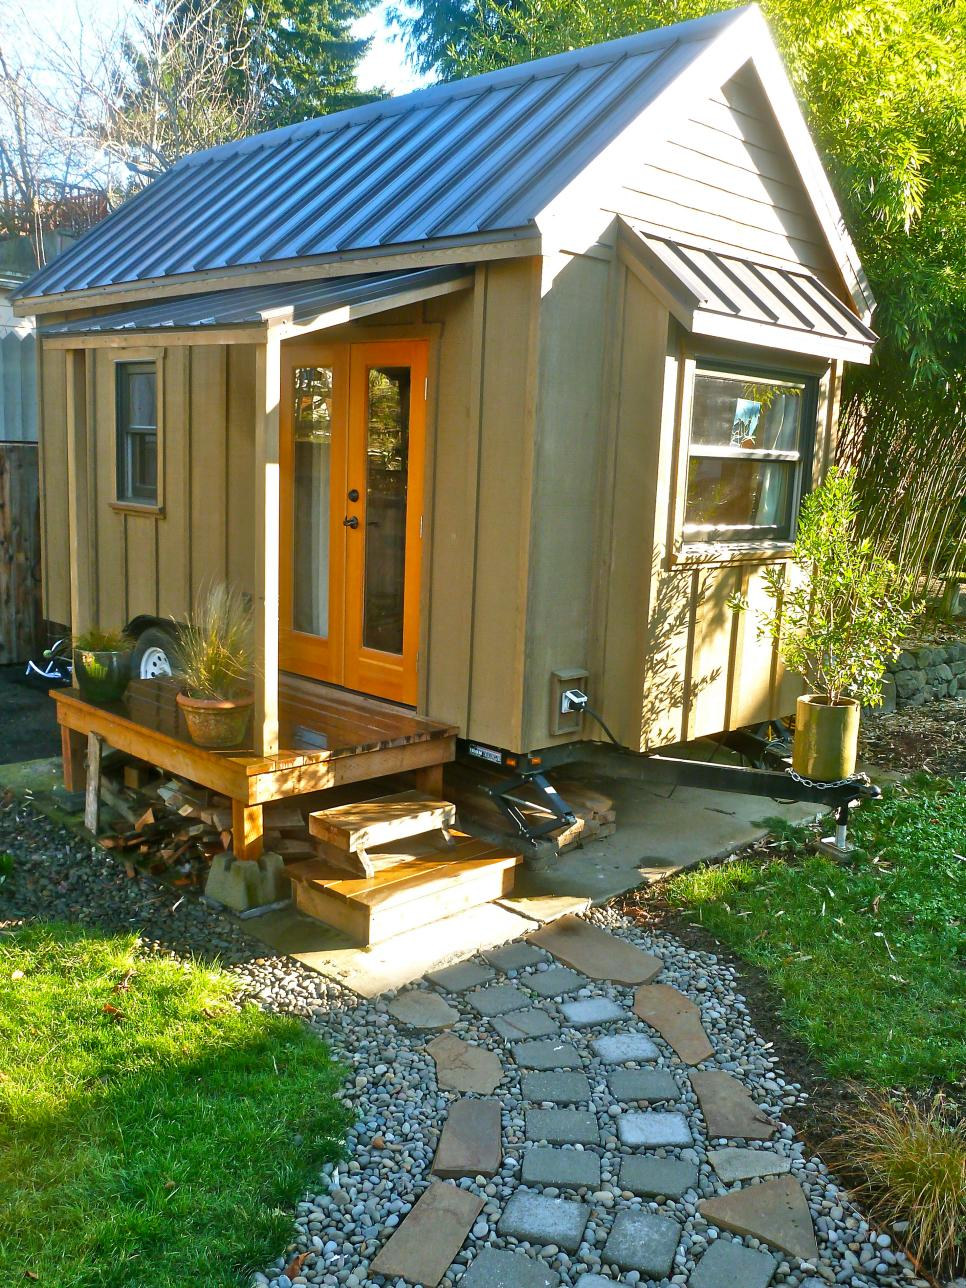 Miraculous Pictures Of 10 Extreme Tiny Homes From Hgtv Remodels Hgtv Largest Home Design Picture Inspirations Pitcheantrous